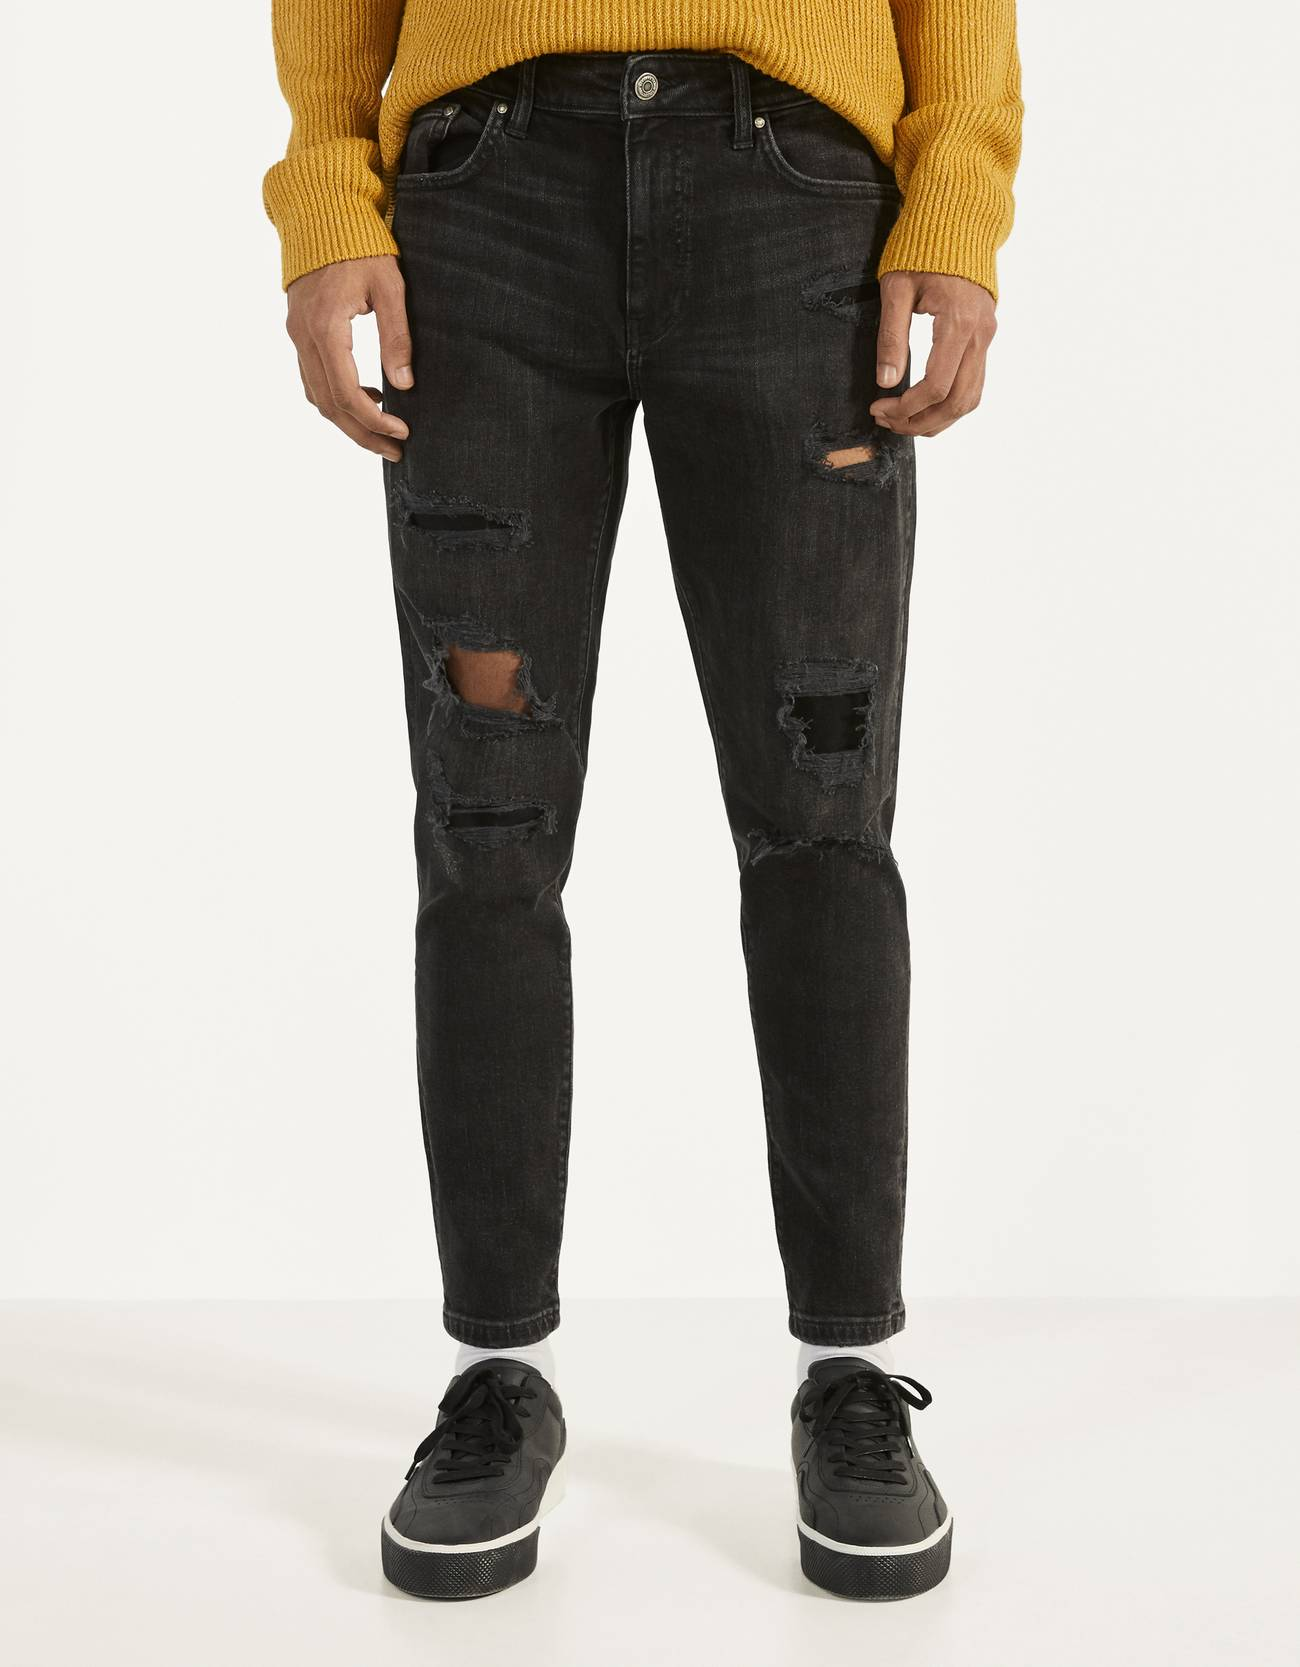 Skinny fit jeans with patches